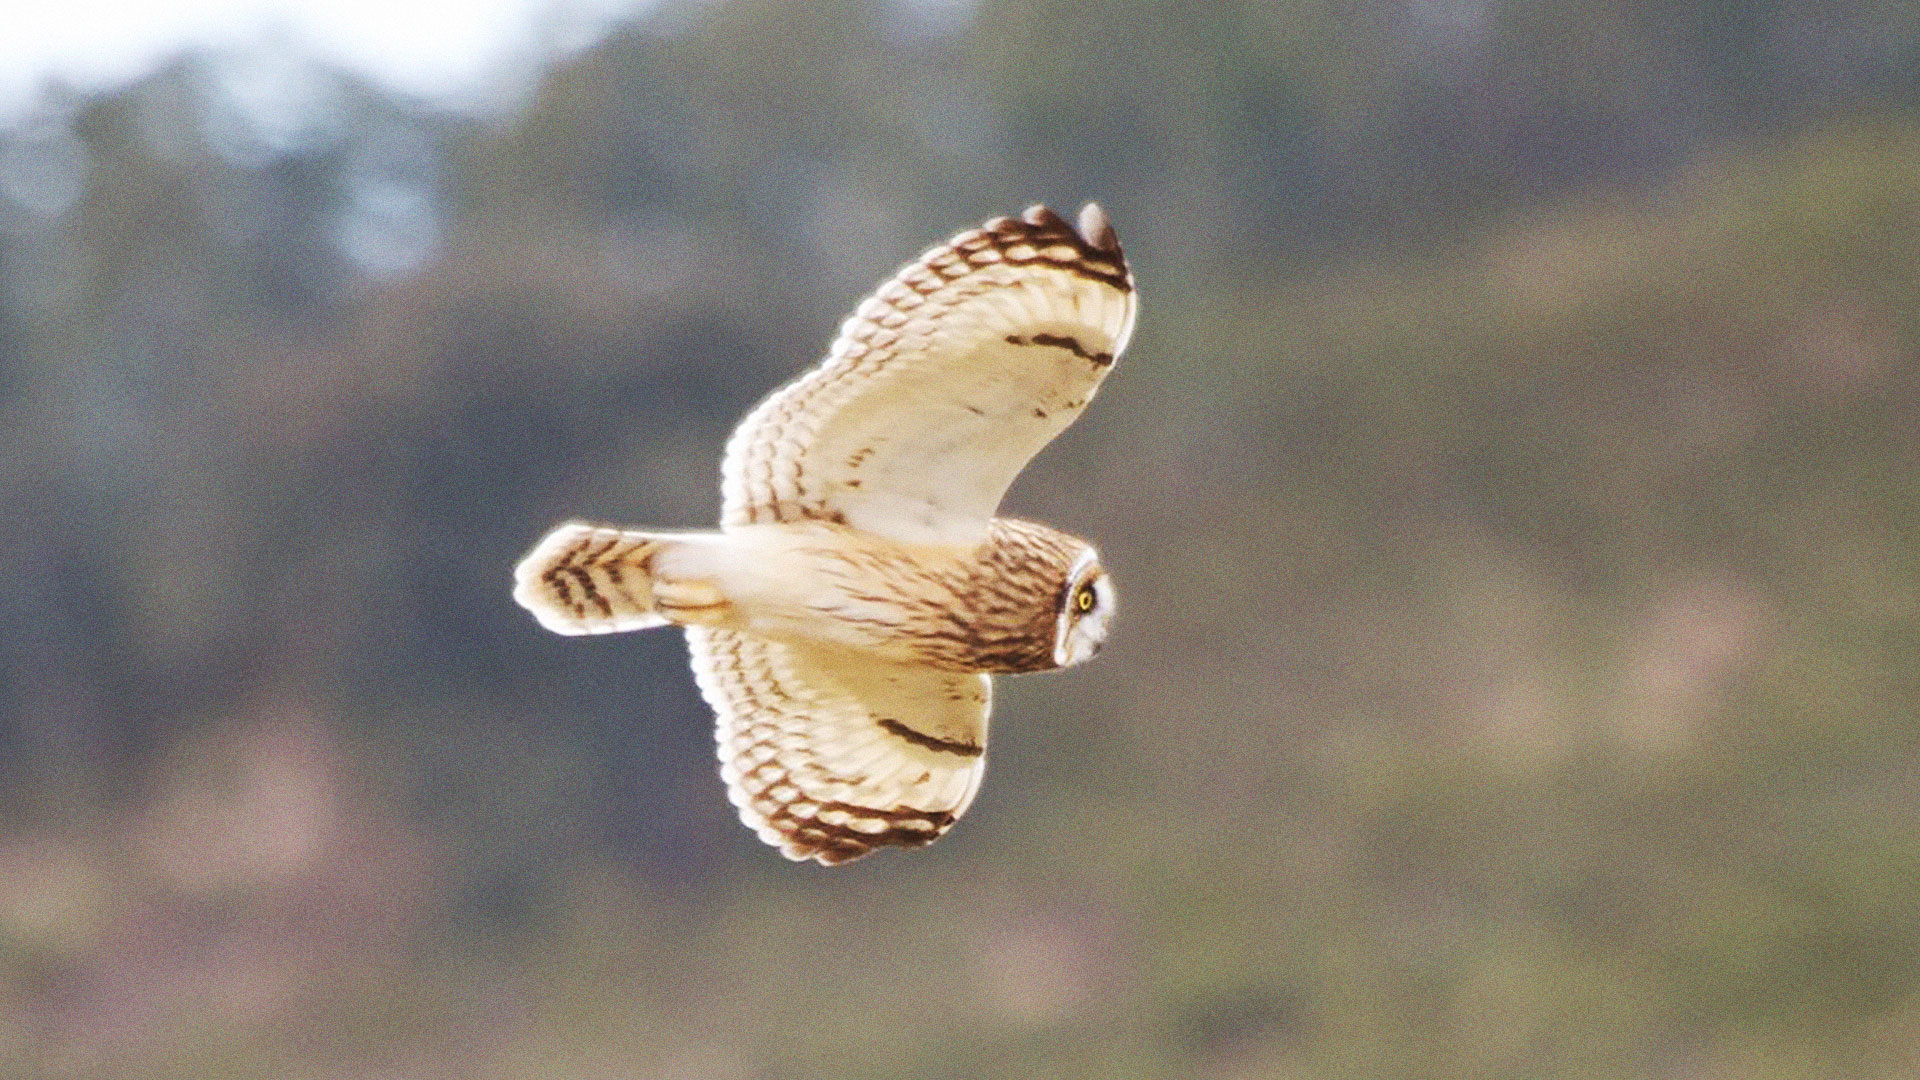 A Short-eared Owl in Hawaii. This subspecies is known as the Pueo or Hawaiian Owl. Photo by HarmonyonPlanetEarth/Wikimedia. http://commons.wikimedia.org/wiki/File:Asio_flammeus_-Hawaii_-flying-8.jpg